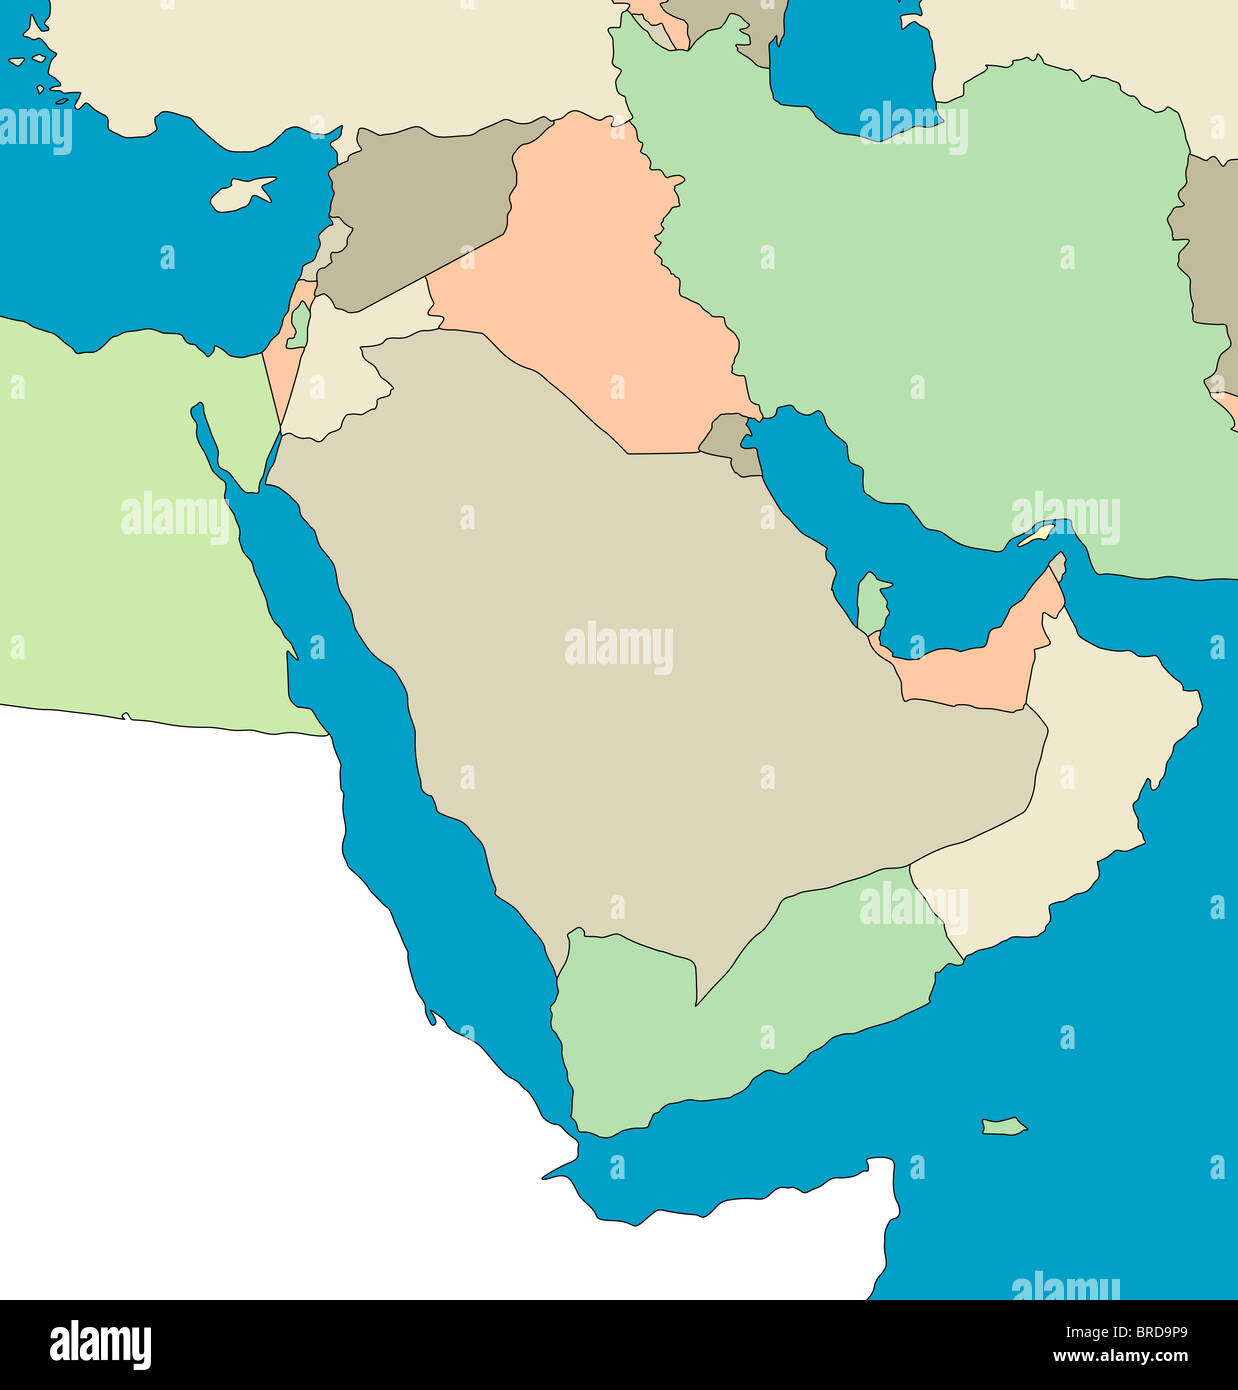 Stylized map of the middle east region no captions All on white